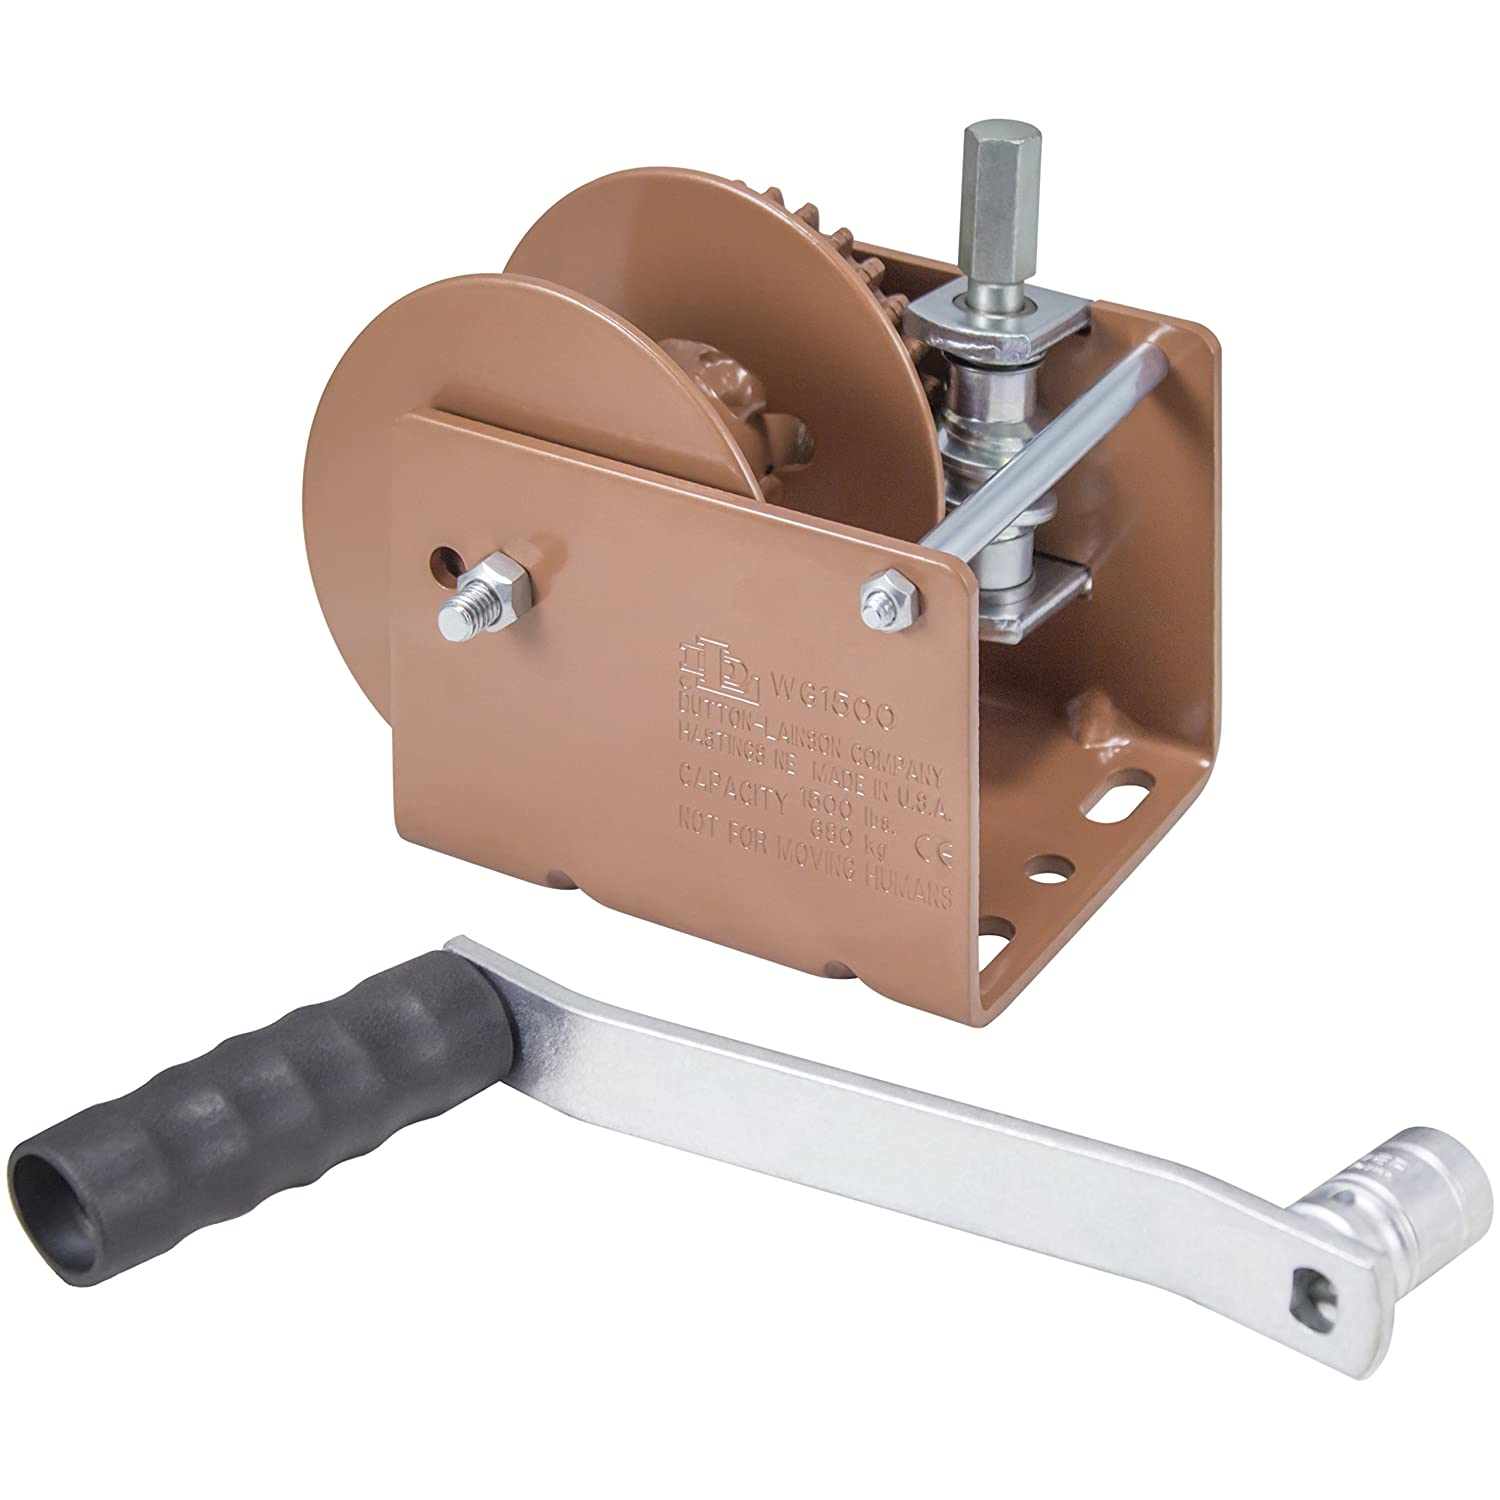 Dutton-Lainson Company WG1500HD 1500 lbs Worm Gear Winch with Hex Drive